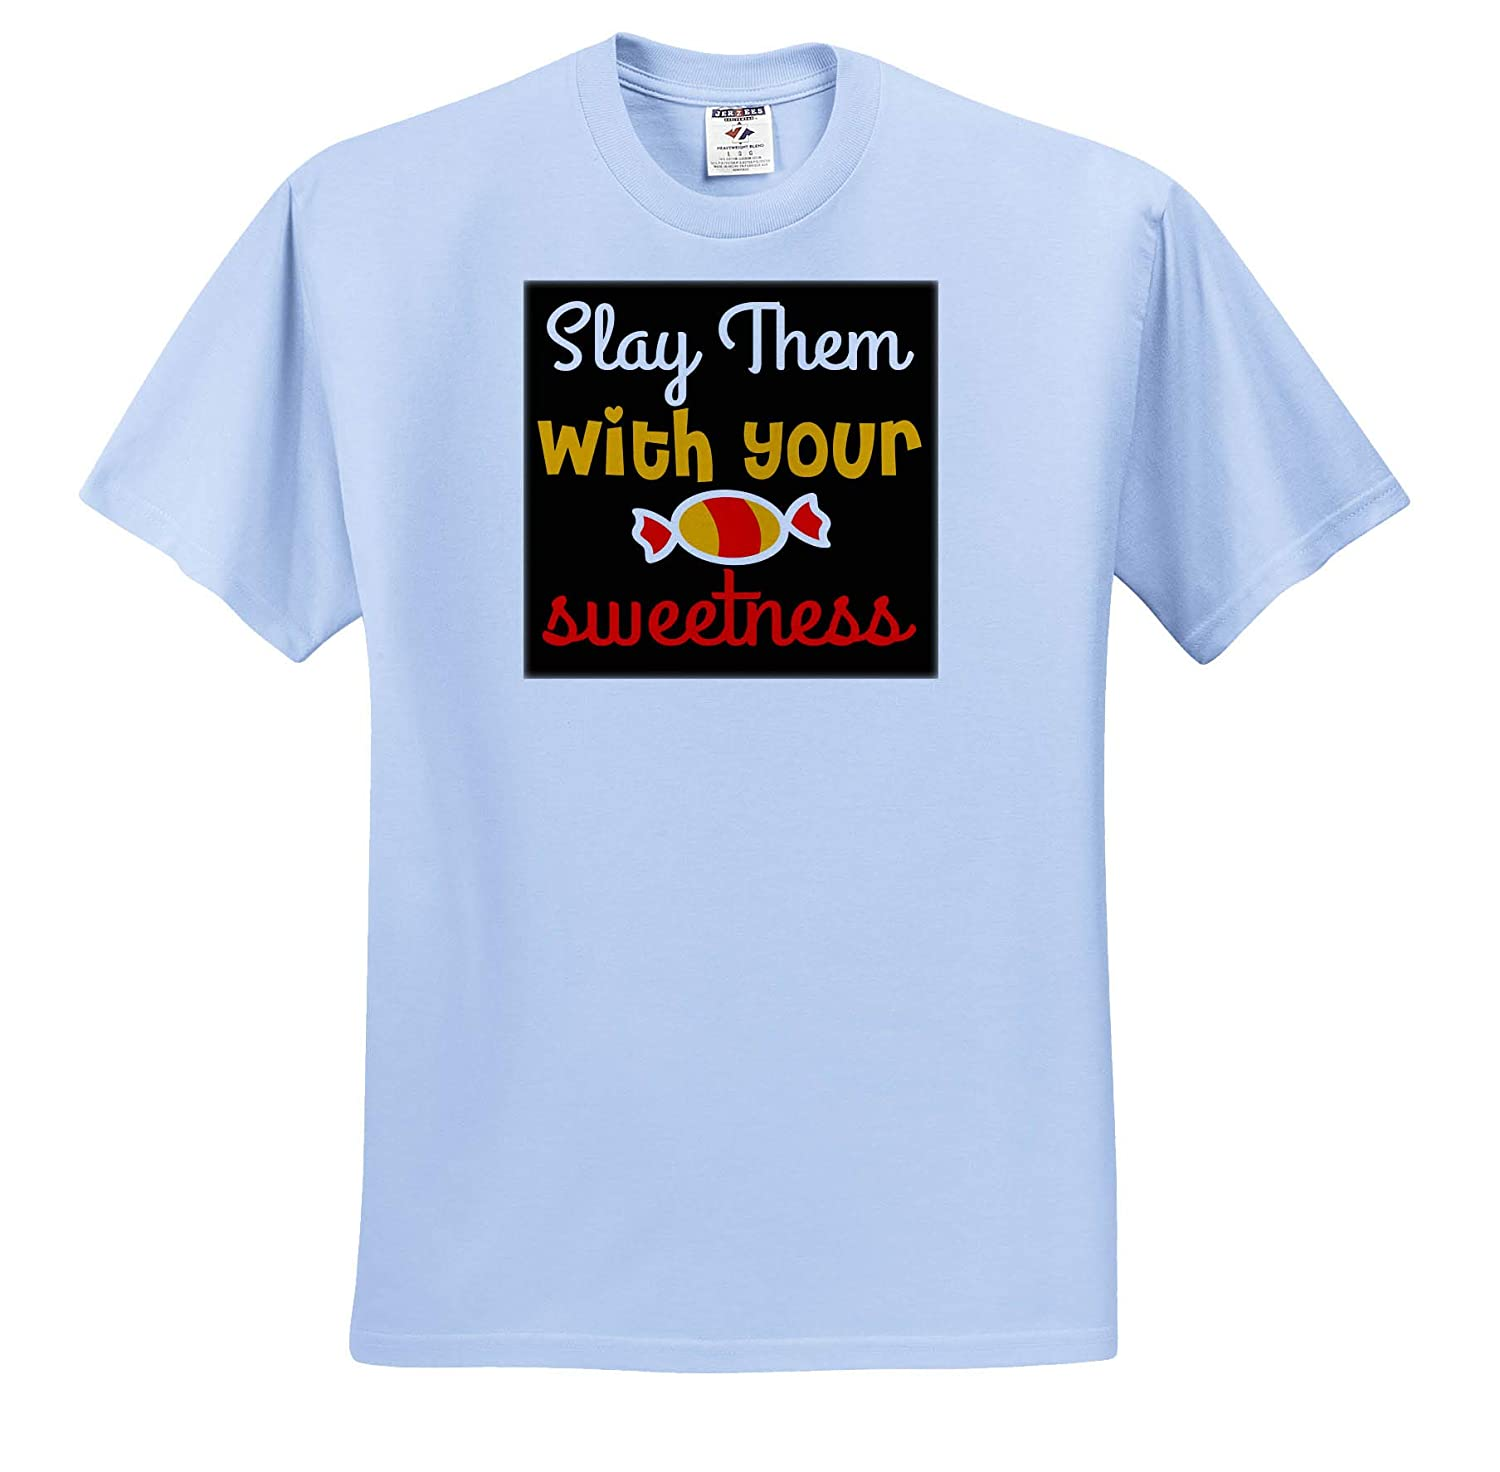 ts/_319309 Quotes and Sayings 3dRose Anne Marie Baugh Adult T-Shirt XL Slay Them with Your Sweetness